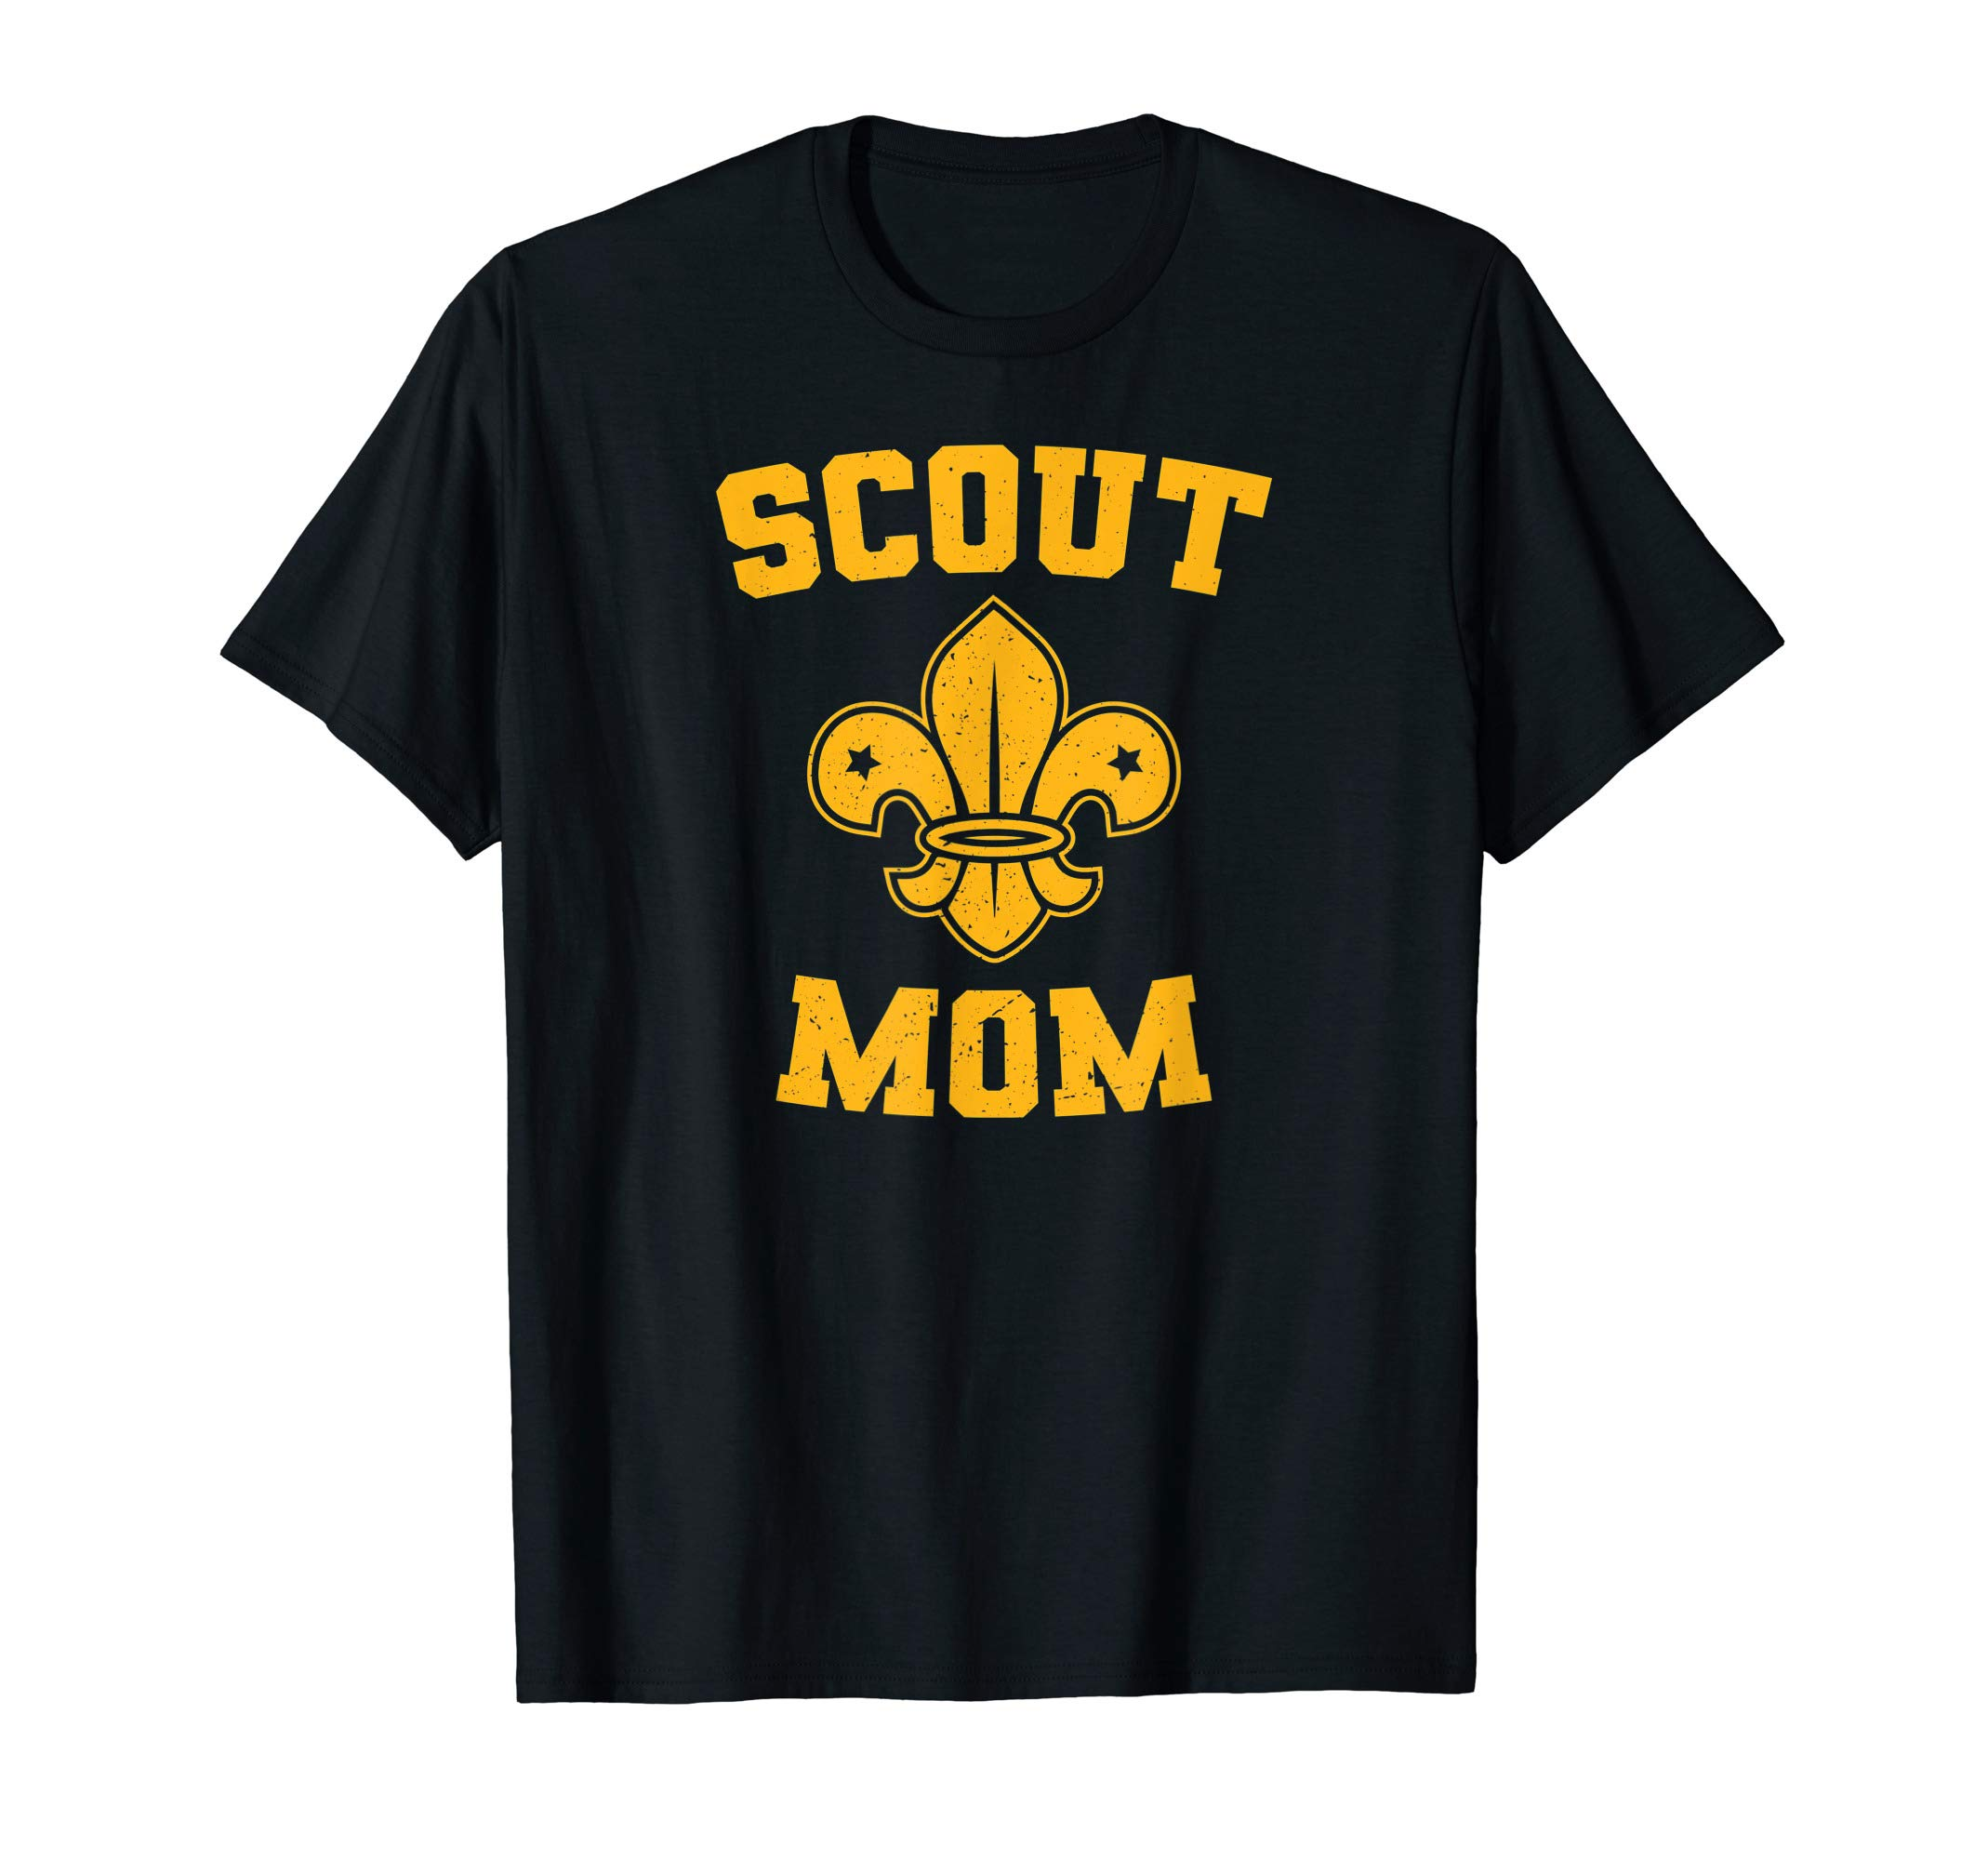 scout mom scout scouting member supporter T-Shirt by Scout Shirts For Scouting Members & Supporters